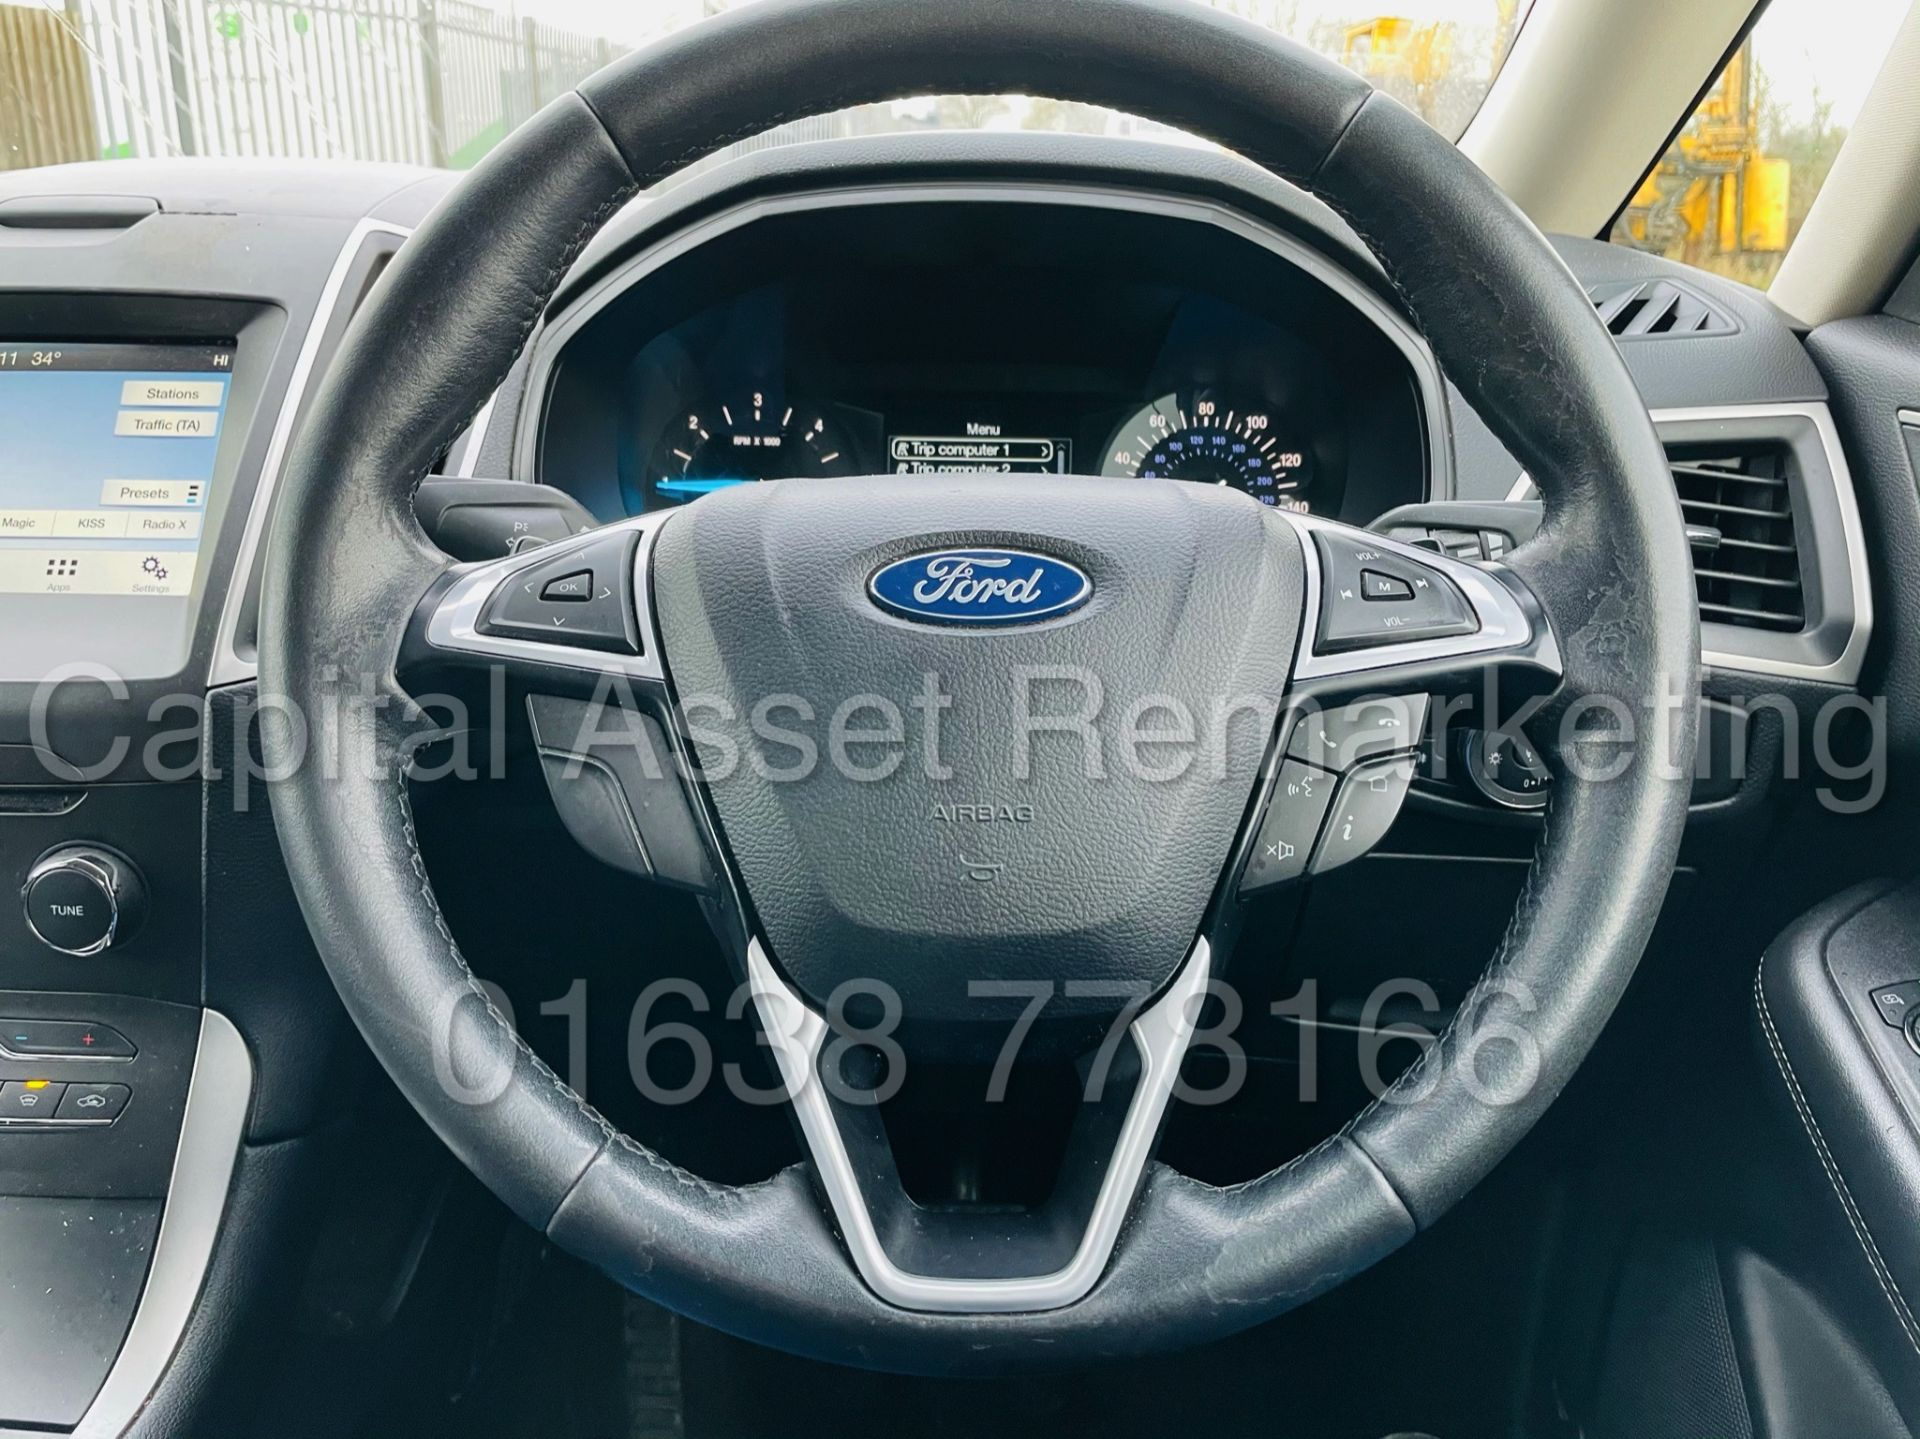 (On Sale) FORD GALAXY *ZETEC EDITION* 7 SEATER MPV (2017 - EURO 6) '2.0 TDCI - AUTO' (1 OWNER) - Image 46 of 48